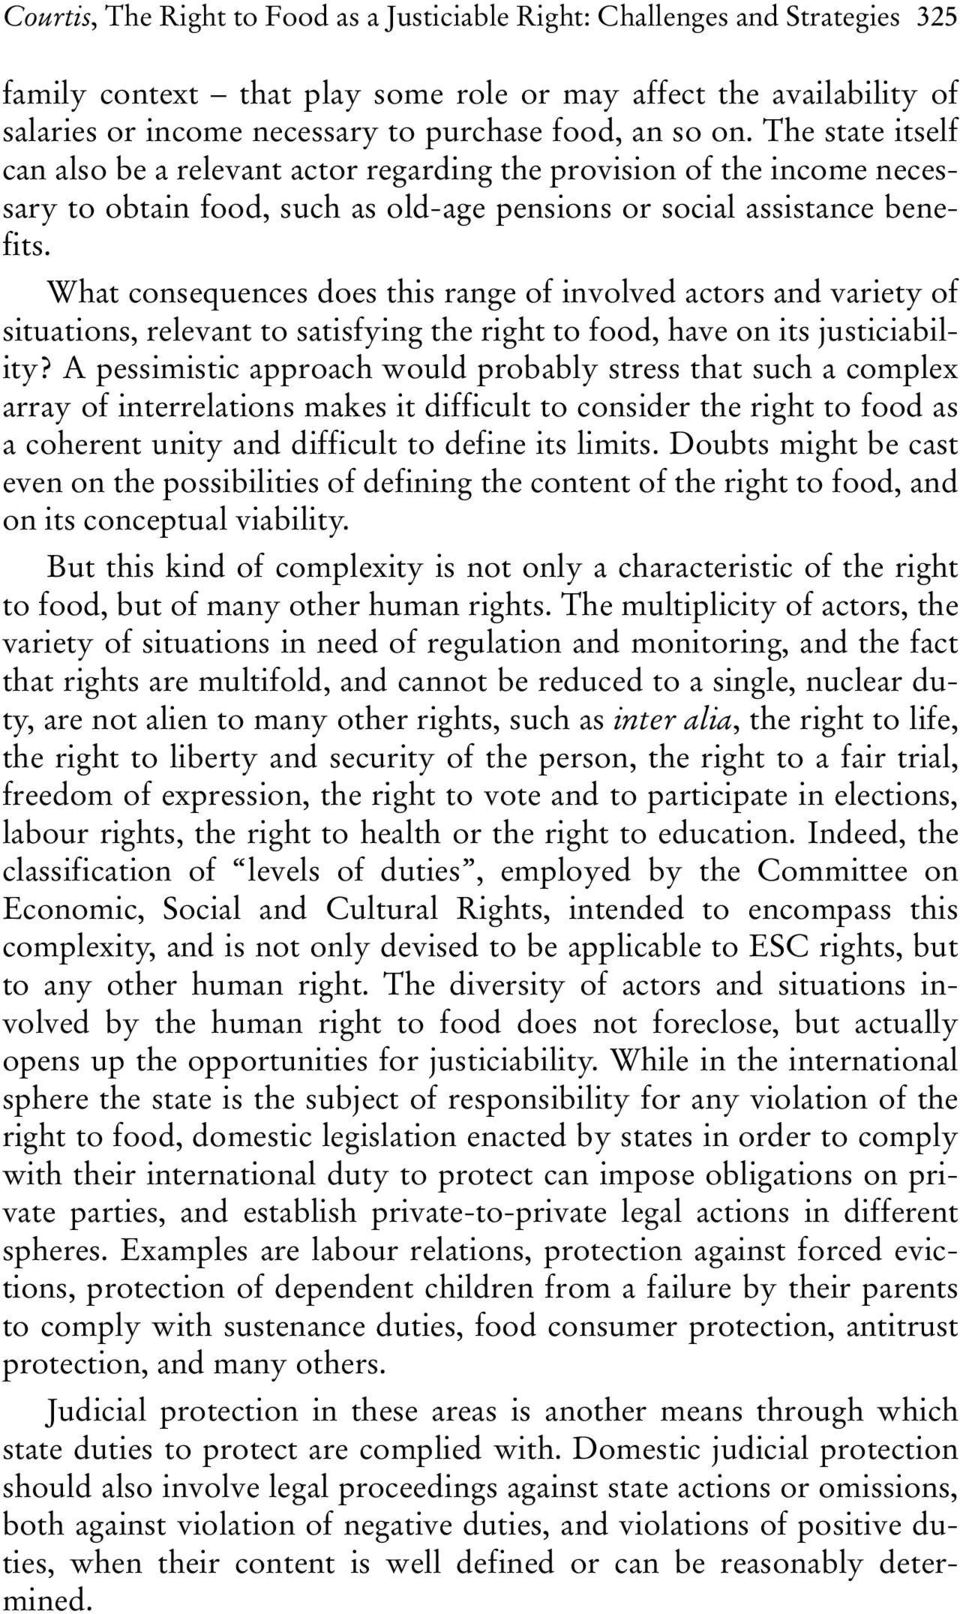 What consequences does this range of involved actors and variety of situations, relevant to satisfying the right to food, have on its justiciability?